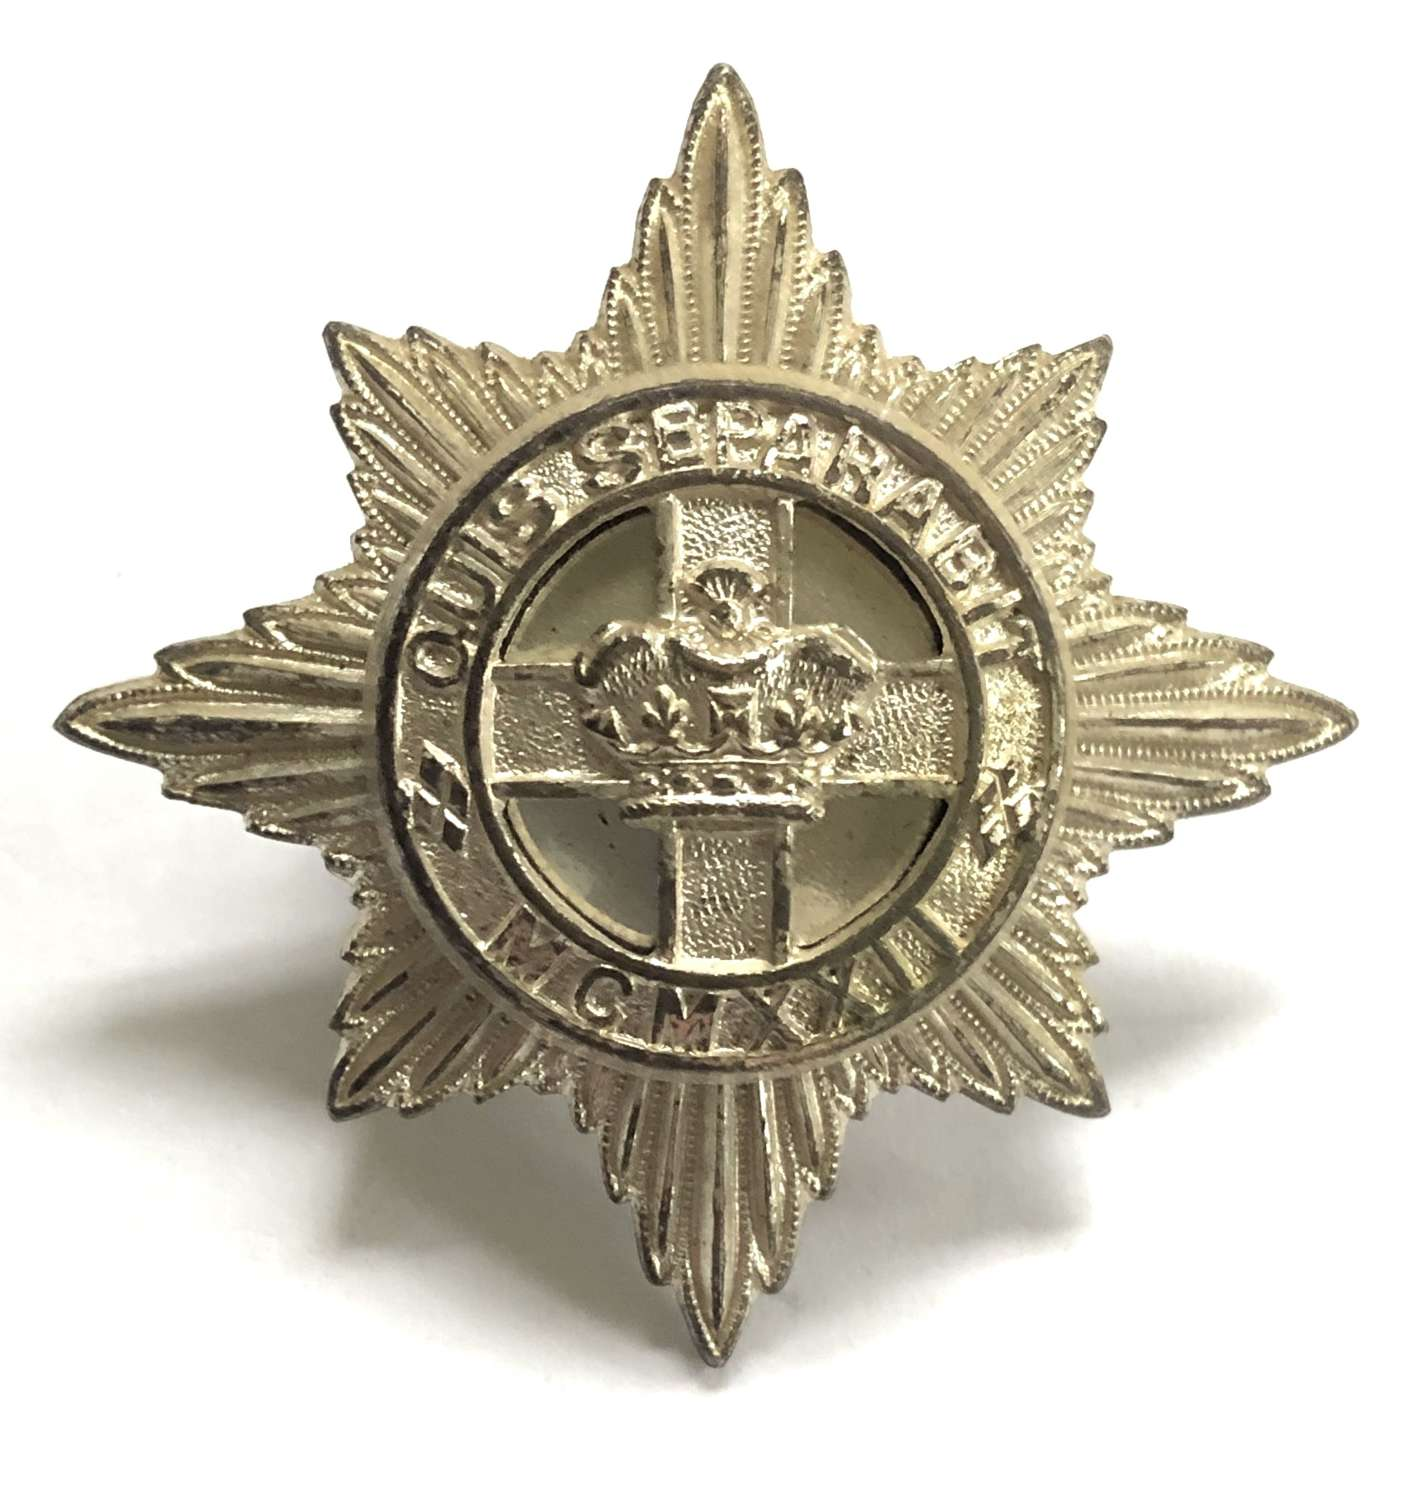 4th/7th Royal Dragoon Guards Officer's silvered cap badge